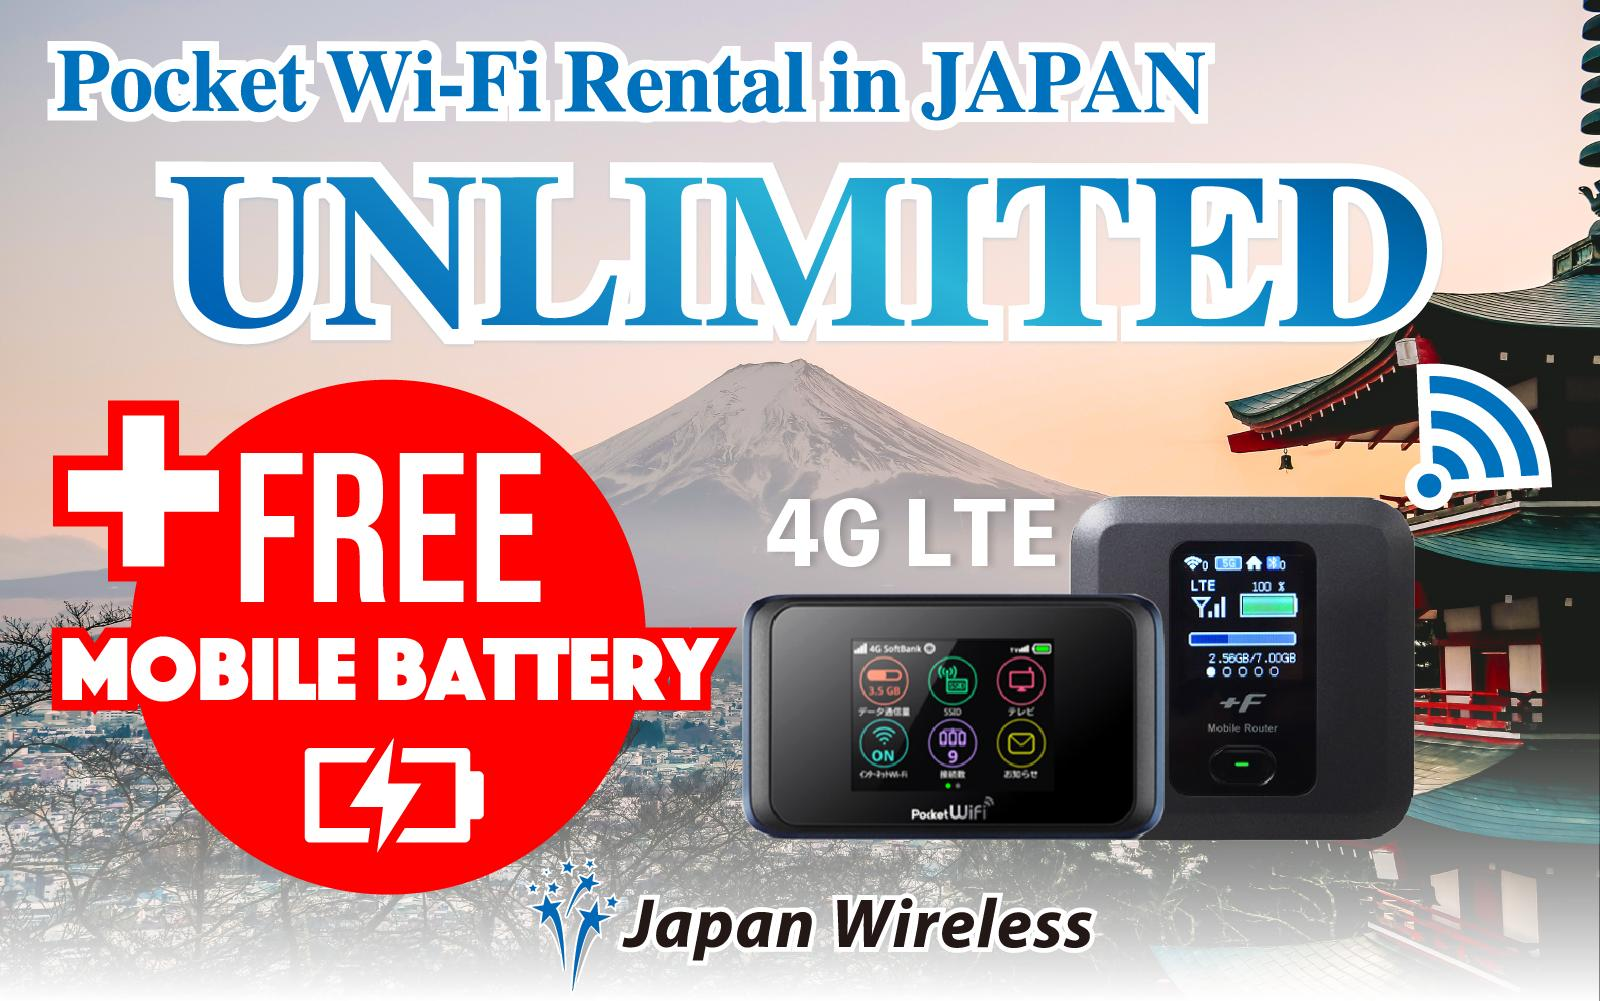 JAPANーUnlimited Pocket Wi-Fi Router with Free mobile battery